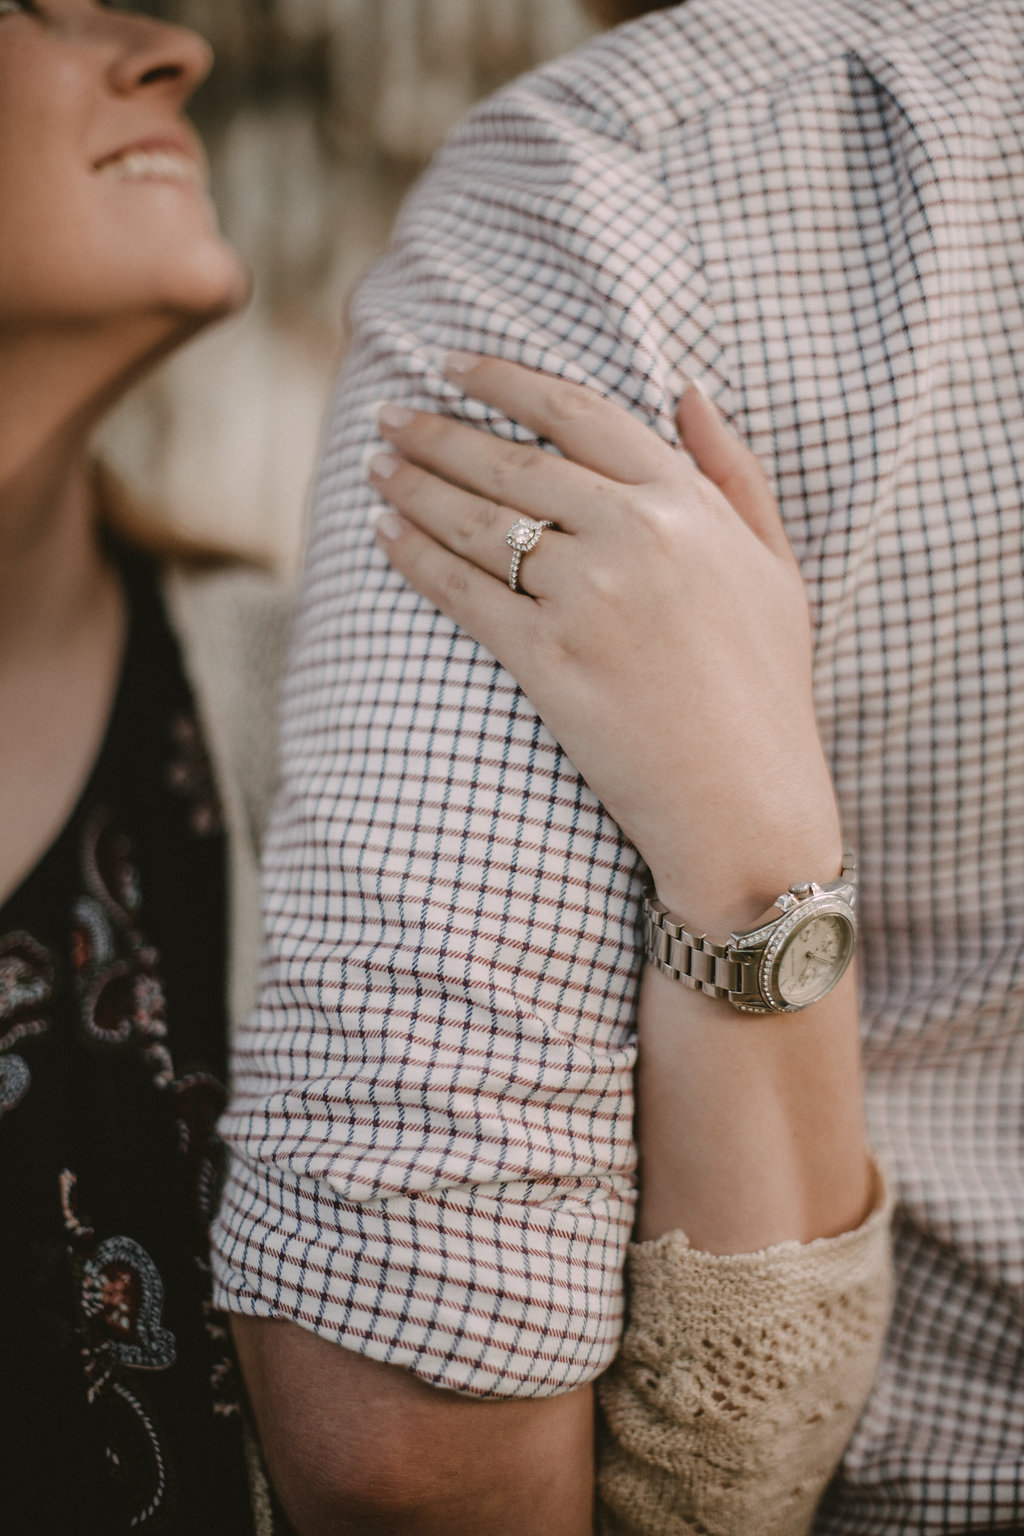 Woman's hand on arm with engagement ring